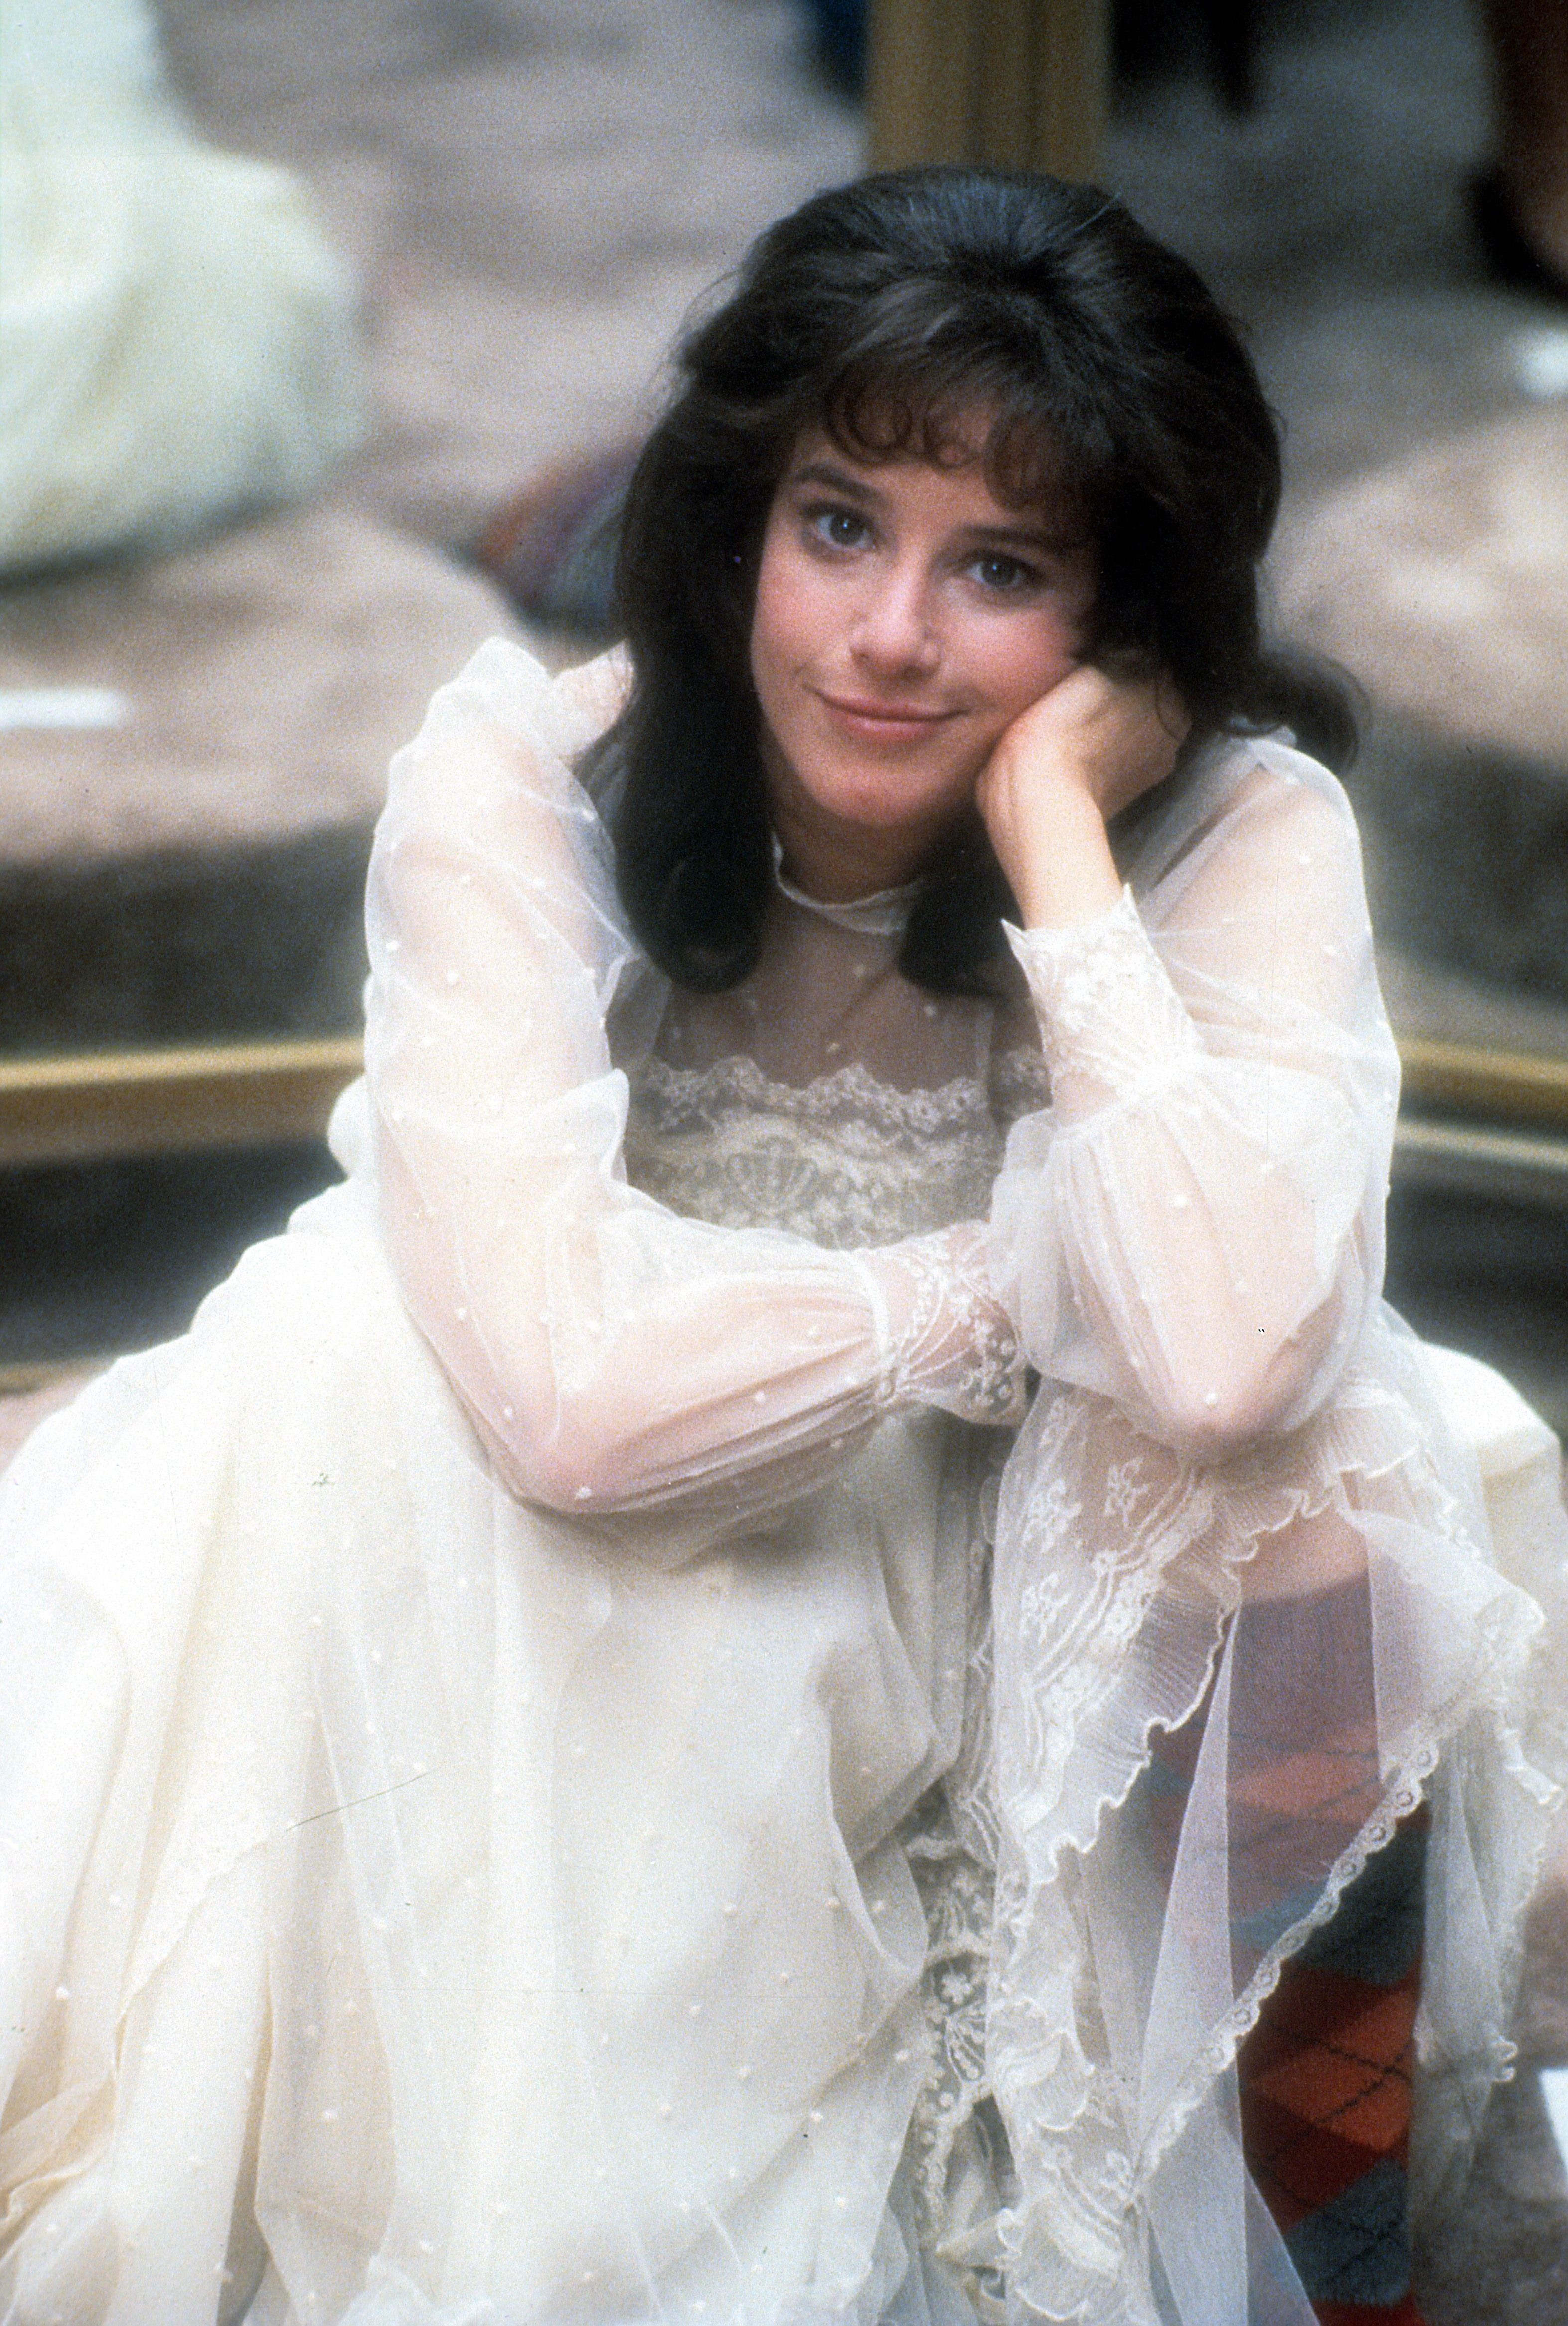 """Debra Winger in a scene from the film """"Terms of Endearment,"""" circa 1983. 